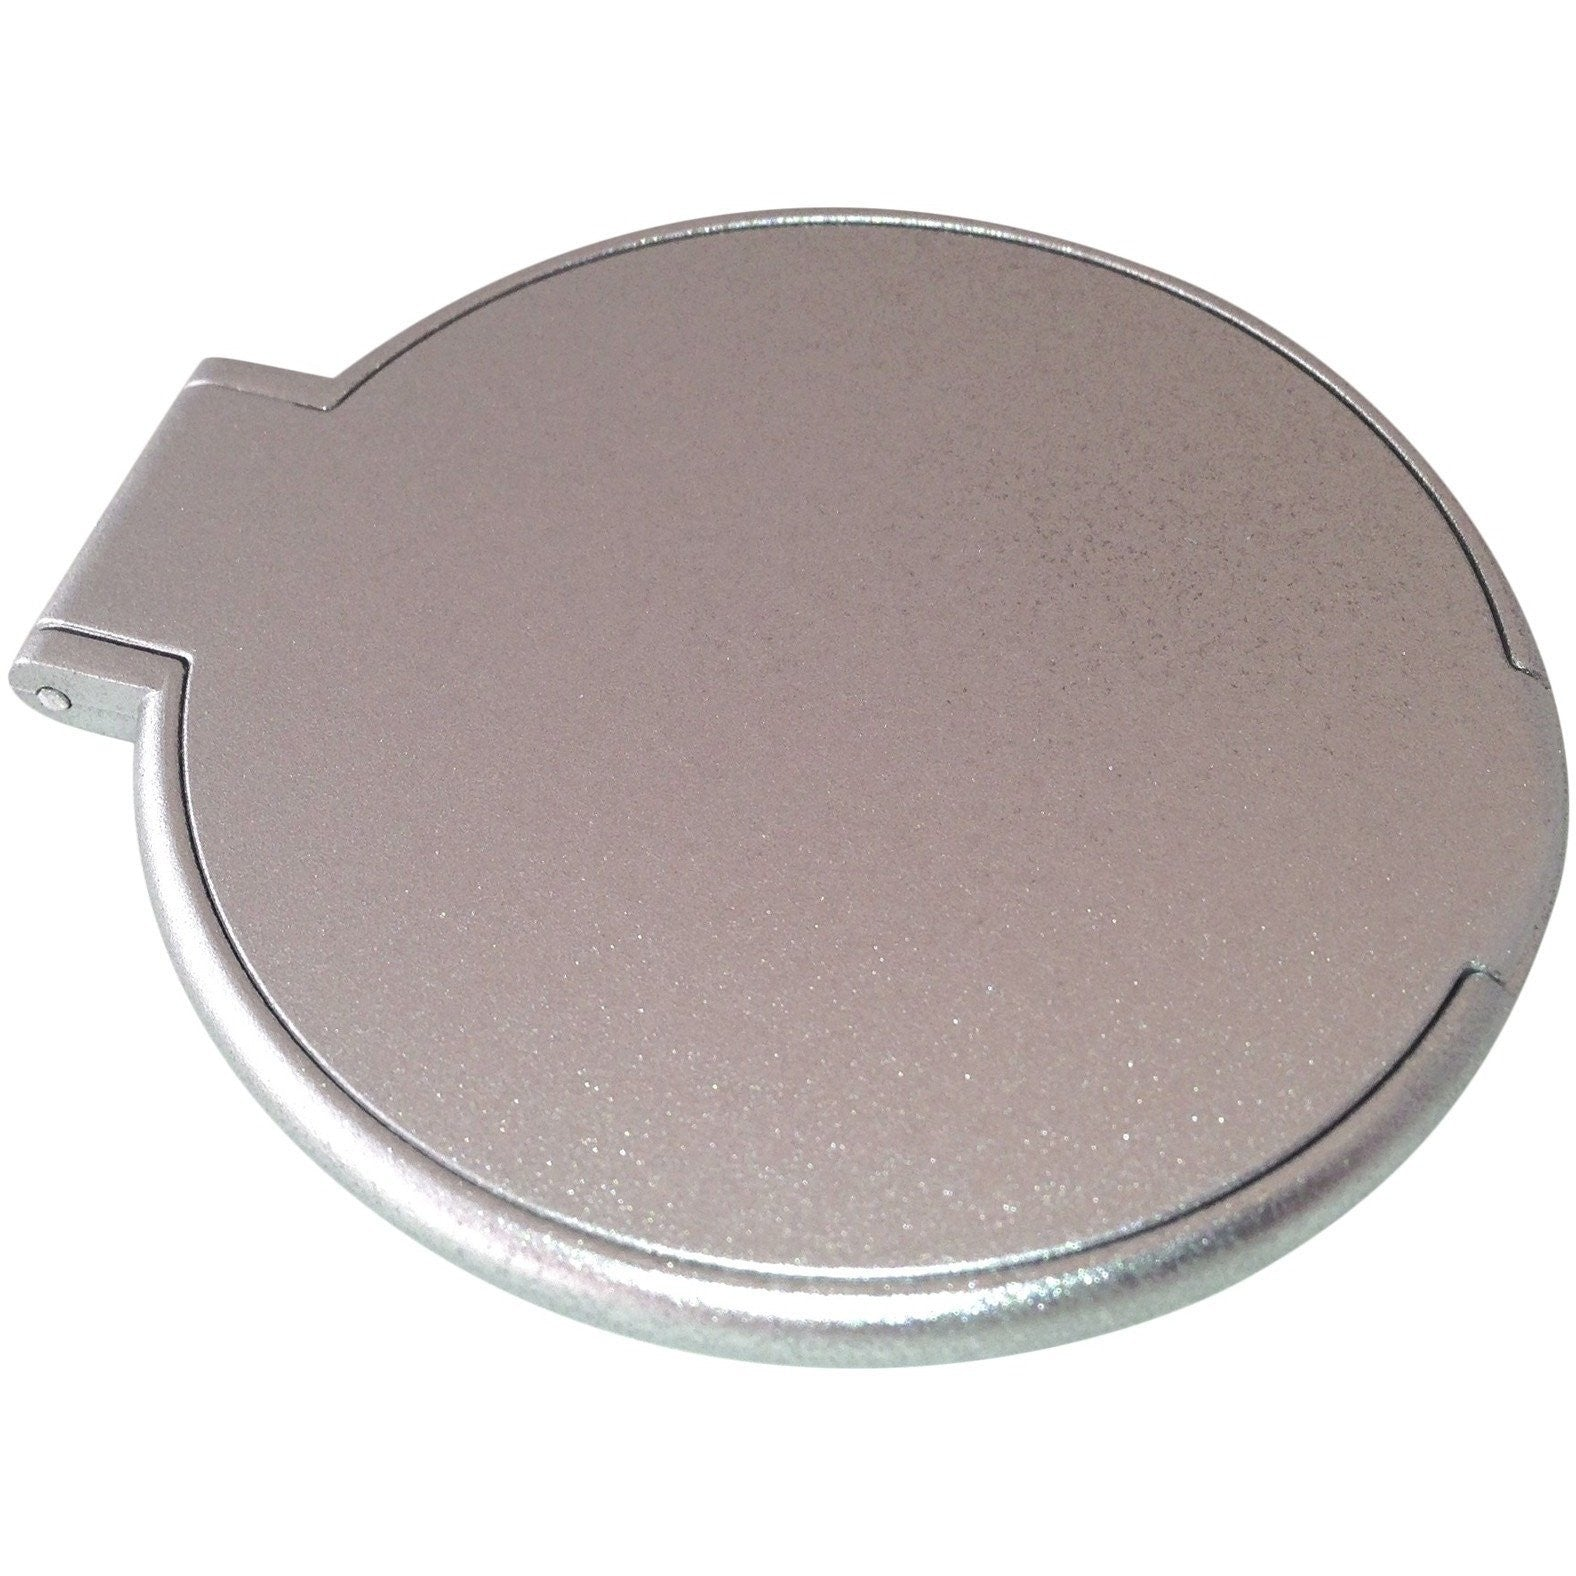 Wholesale Lot of 100 Blank Thin Plastic Compact Cosmetic Mirror Cases Silver